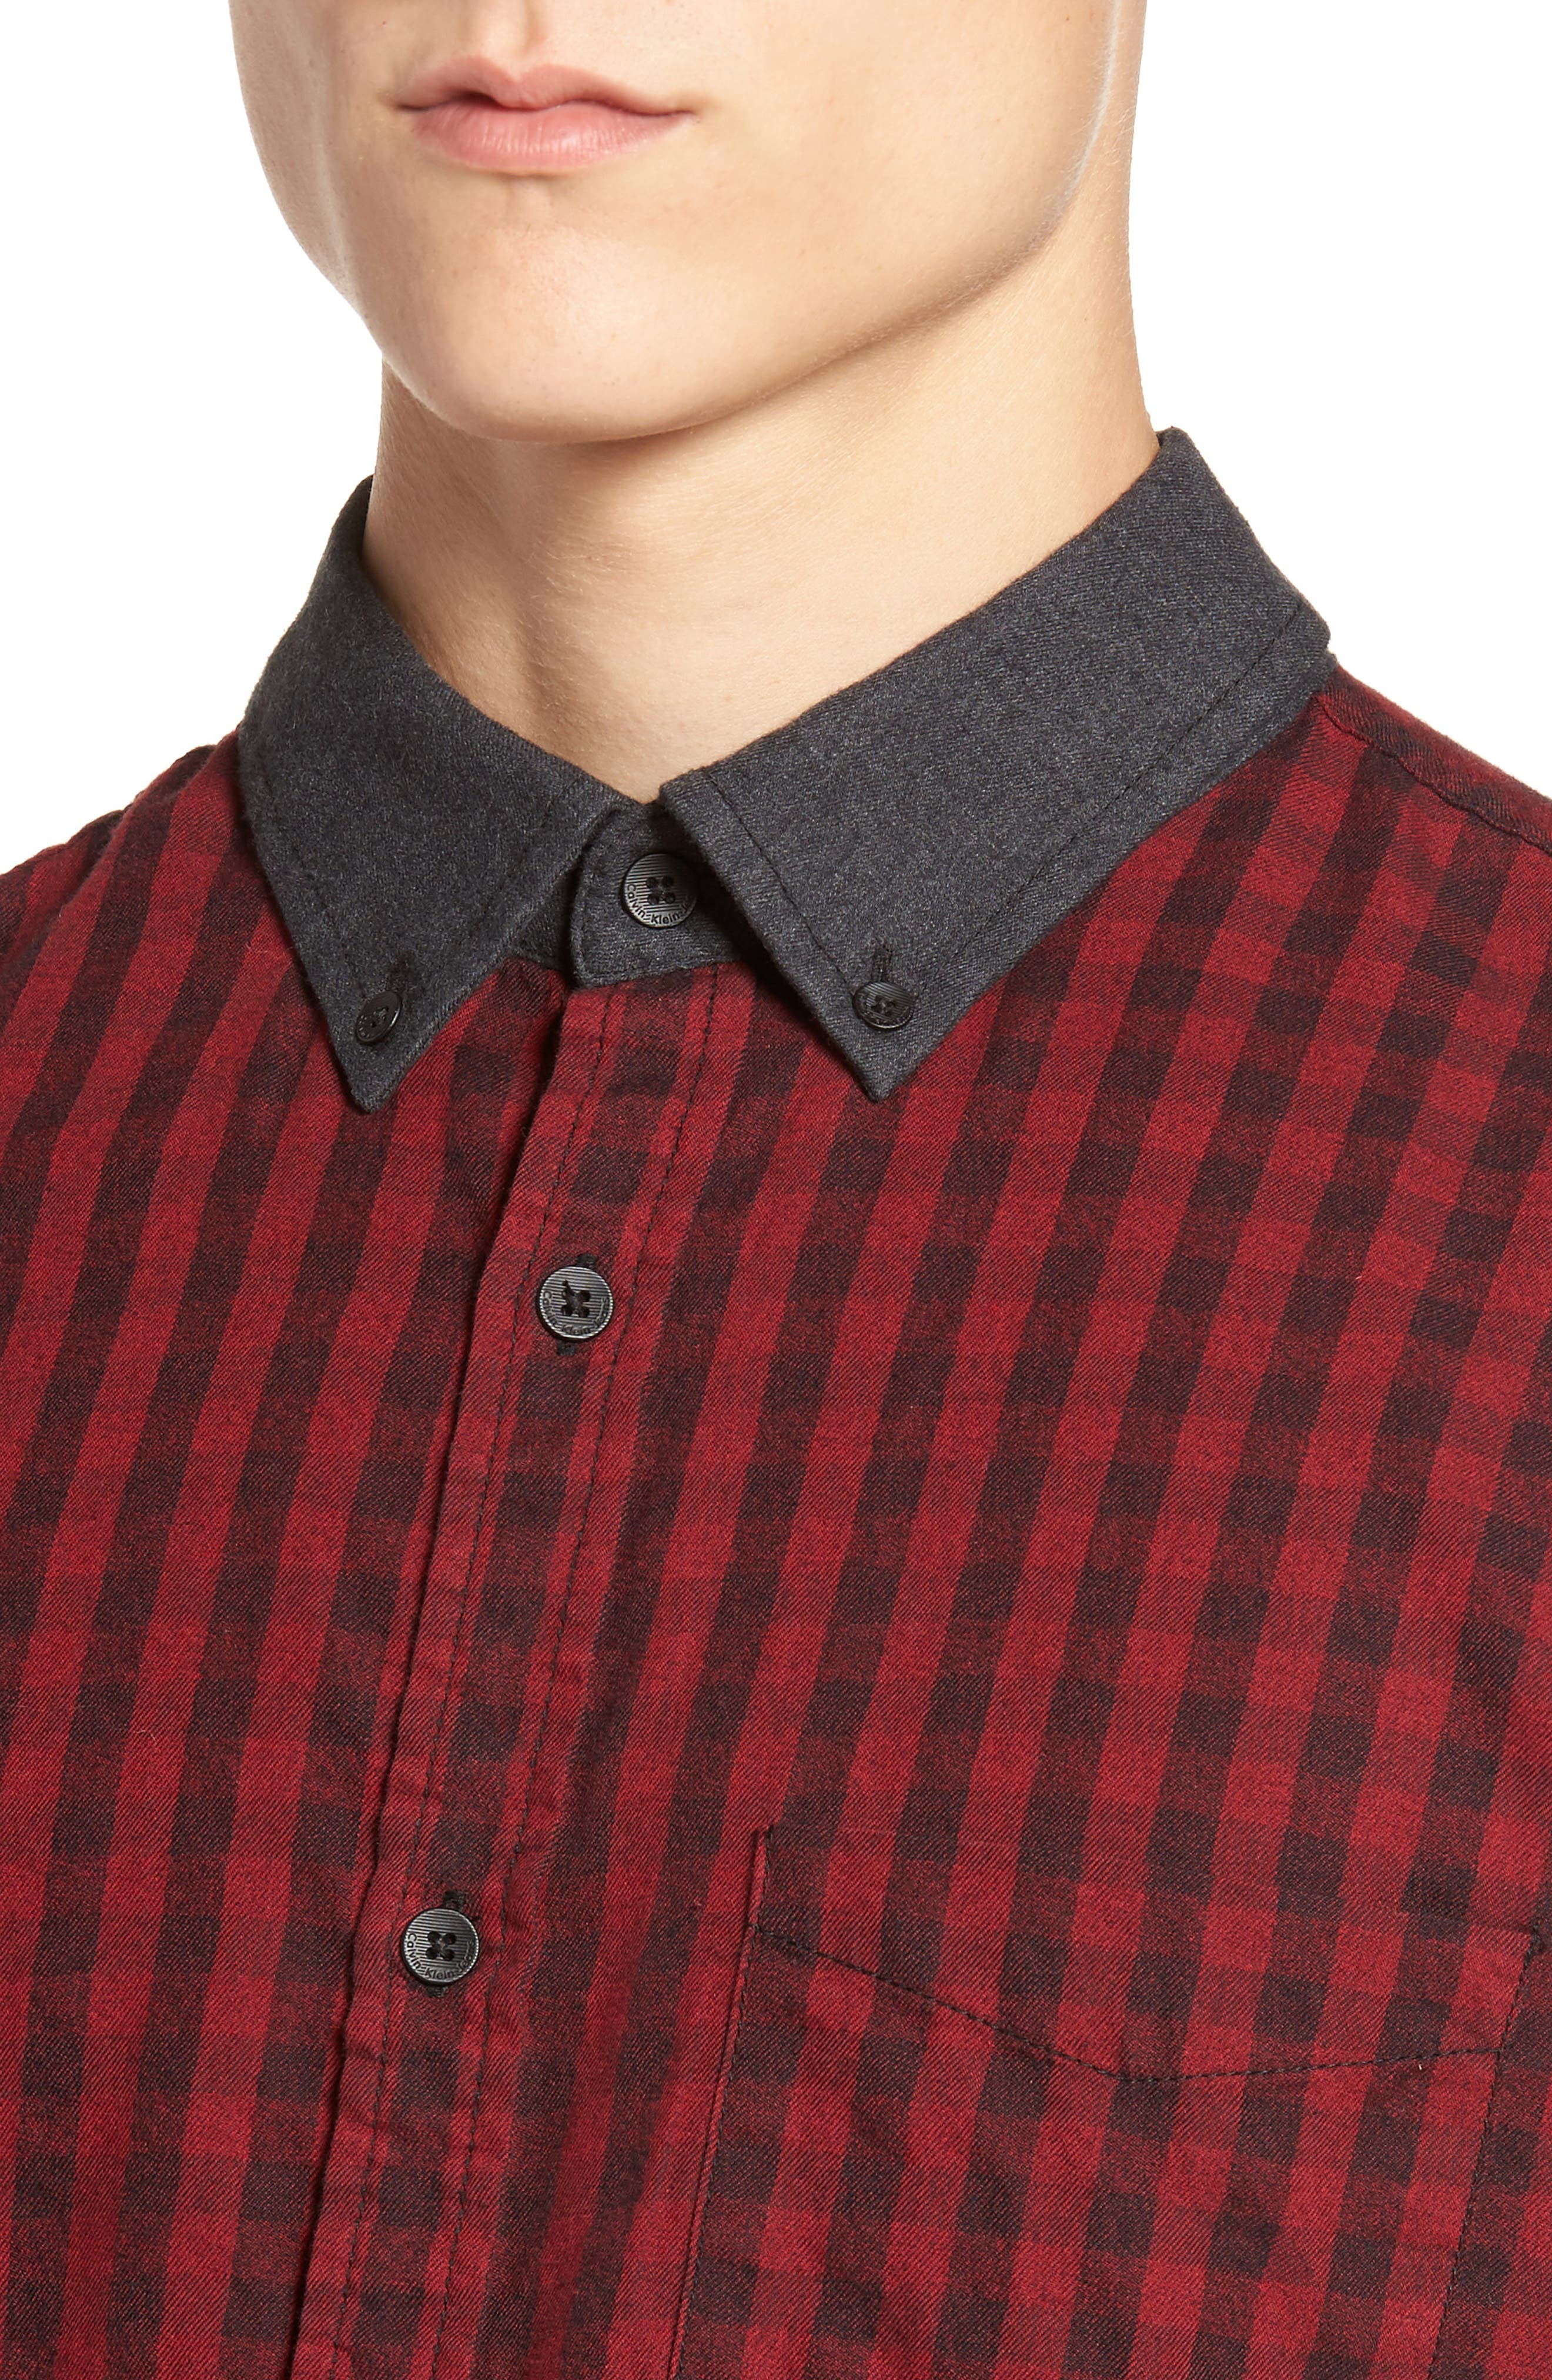 Barn Flannel Shirt,                             Alternate thumbnail 4, color,                             621